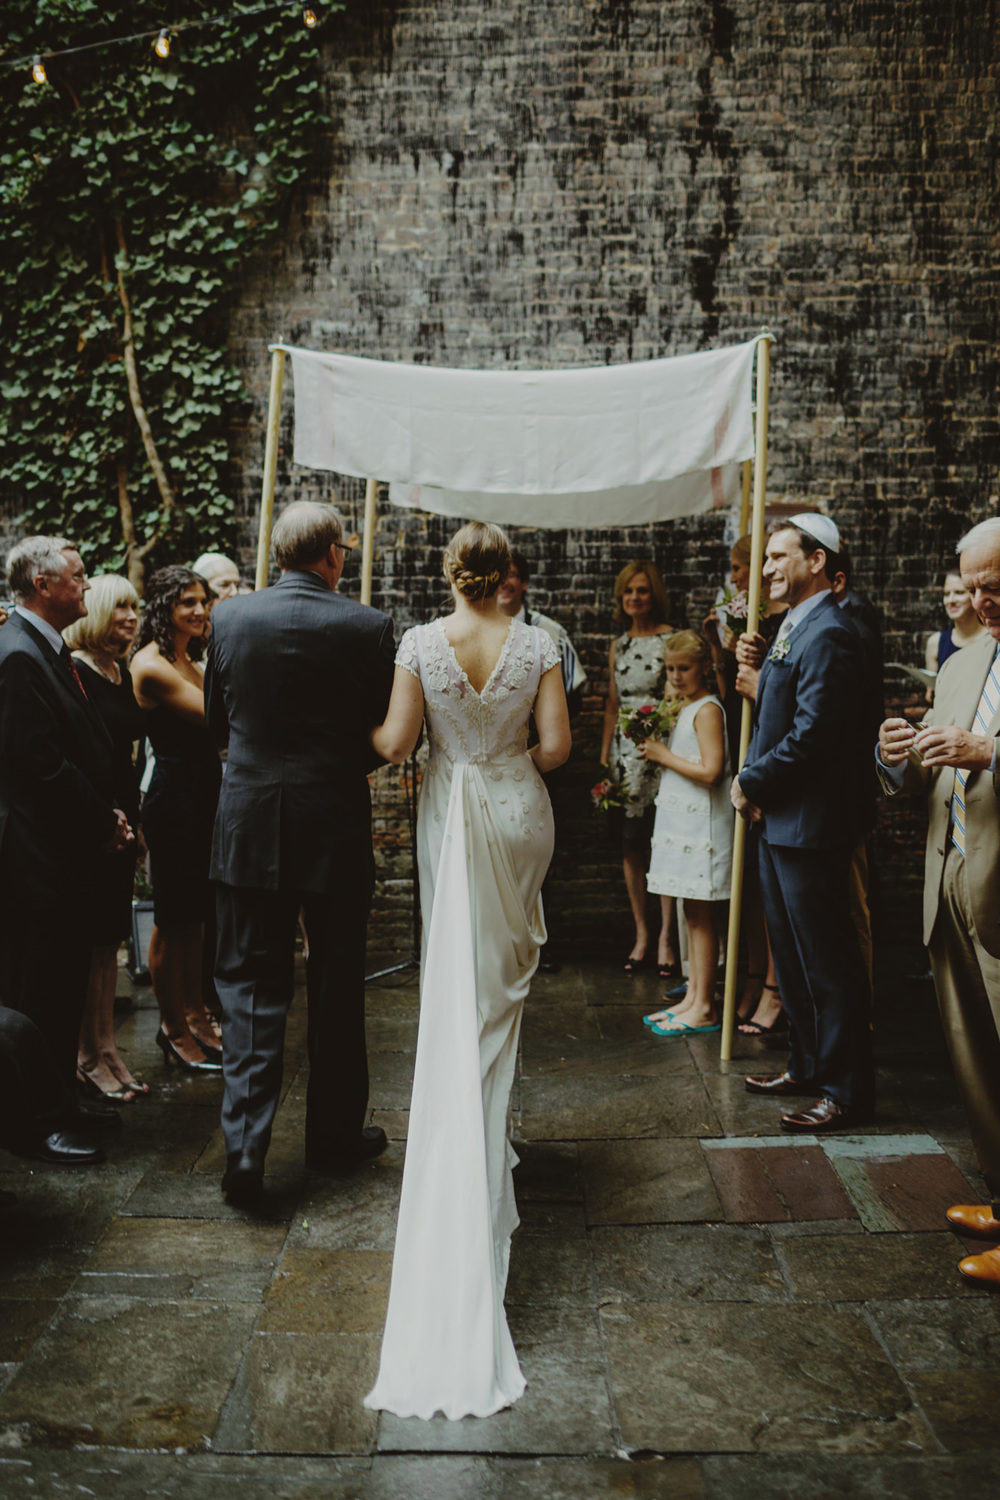 brooklyn_wedding_flatbushfarm_sammblake_029.jpg